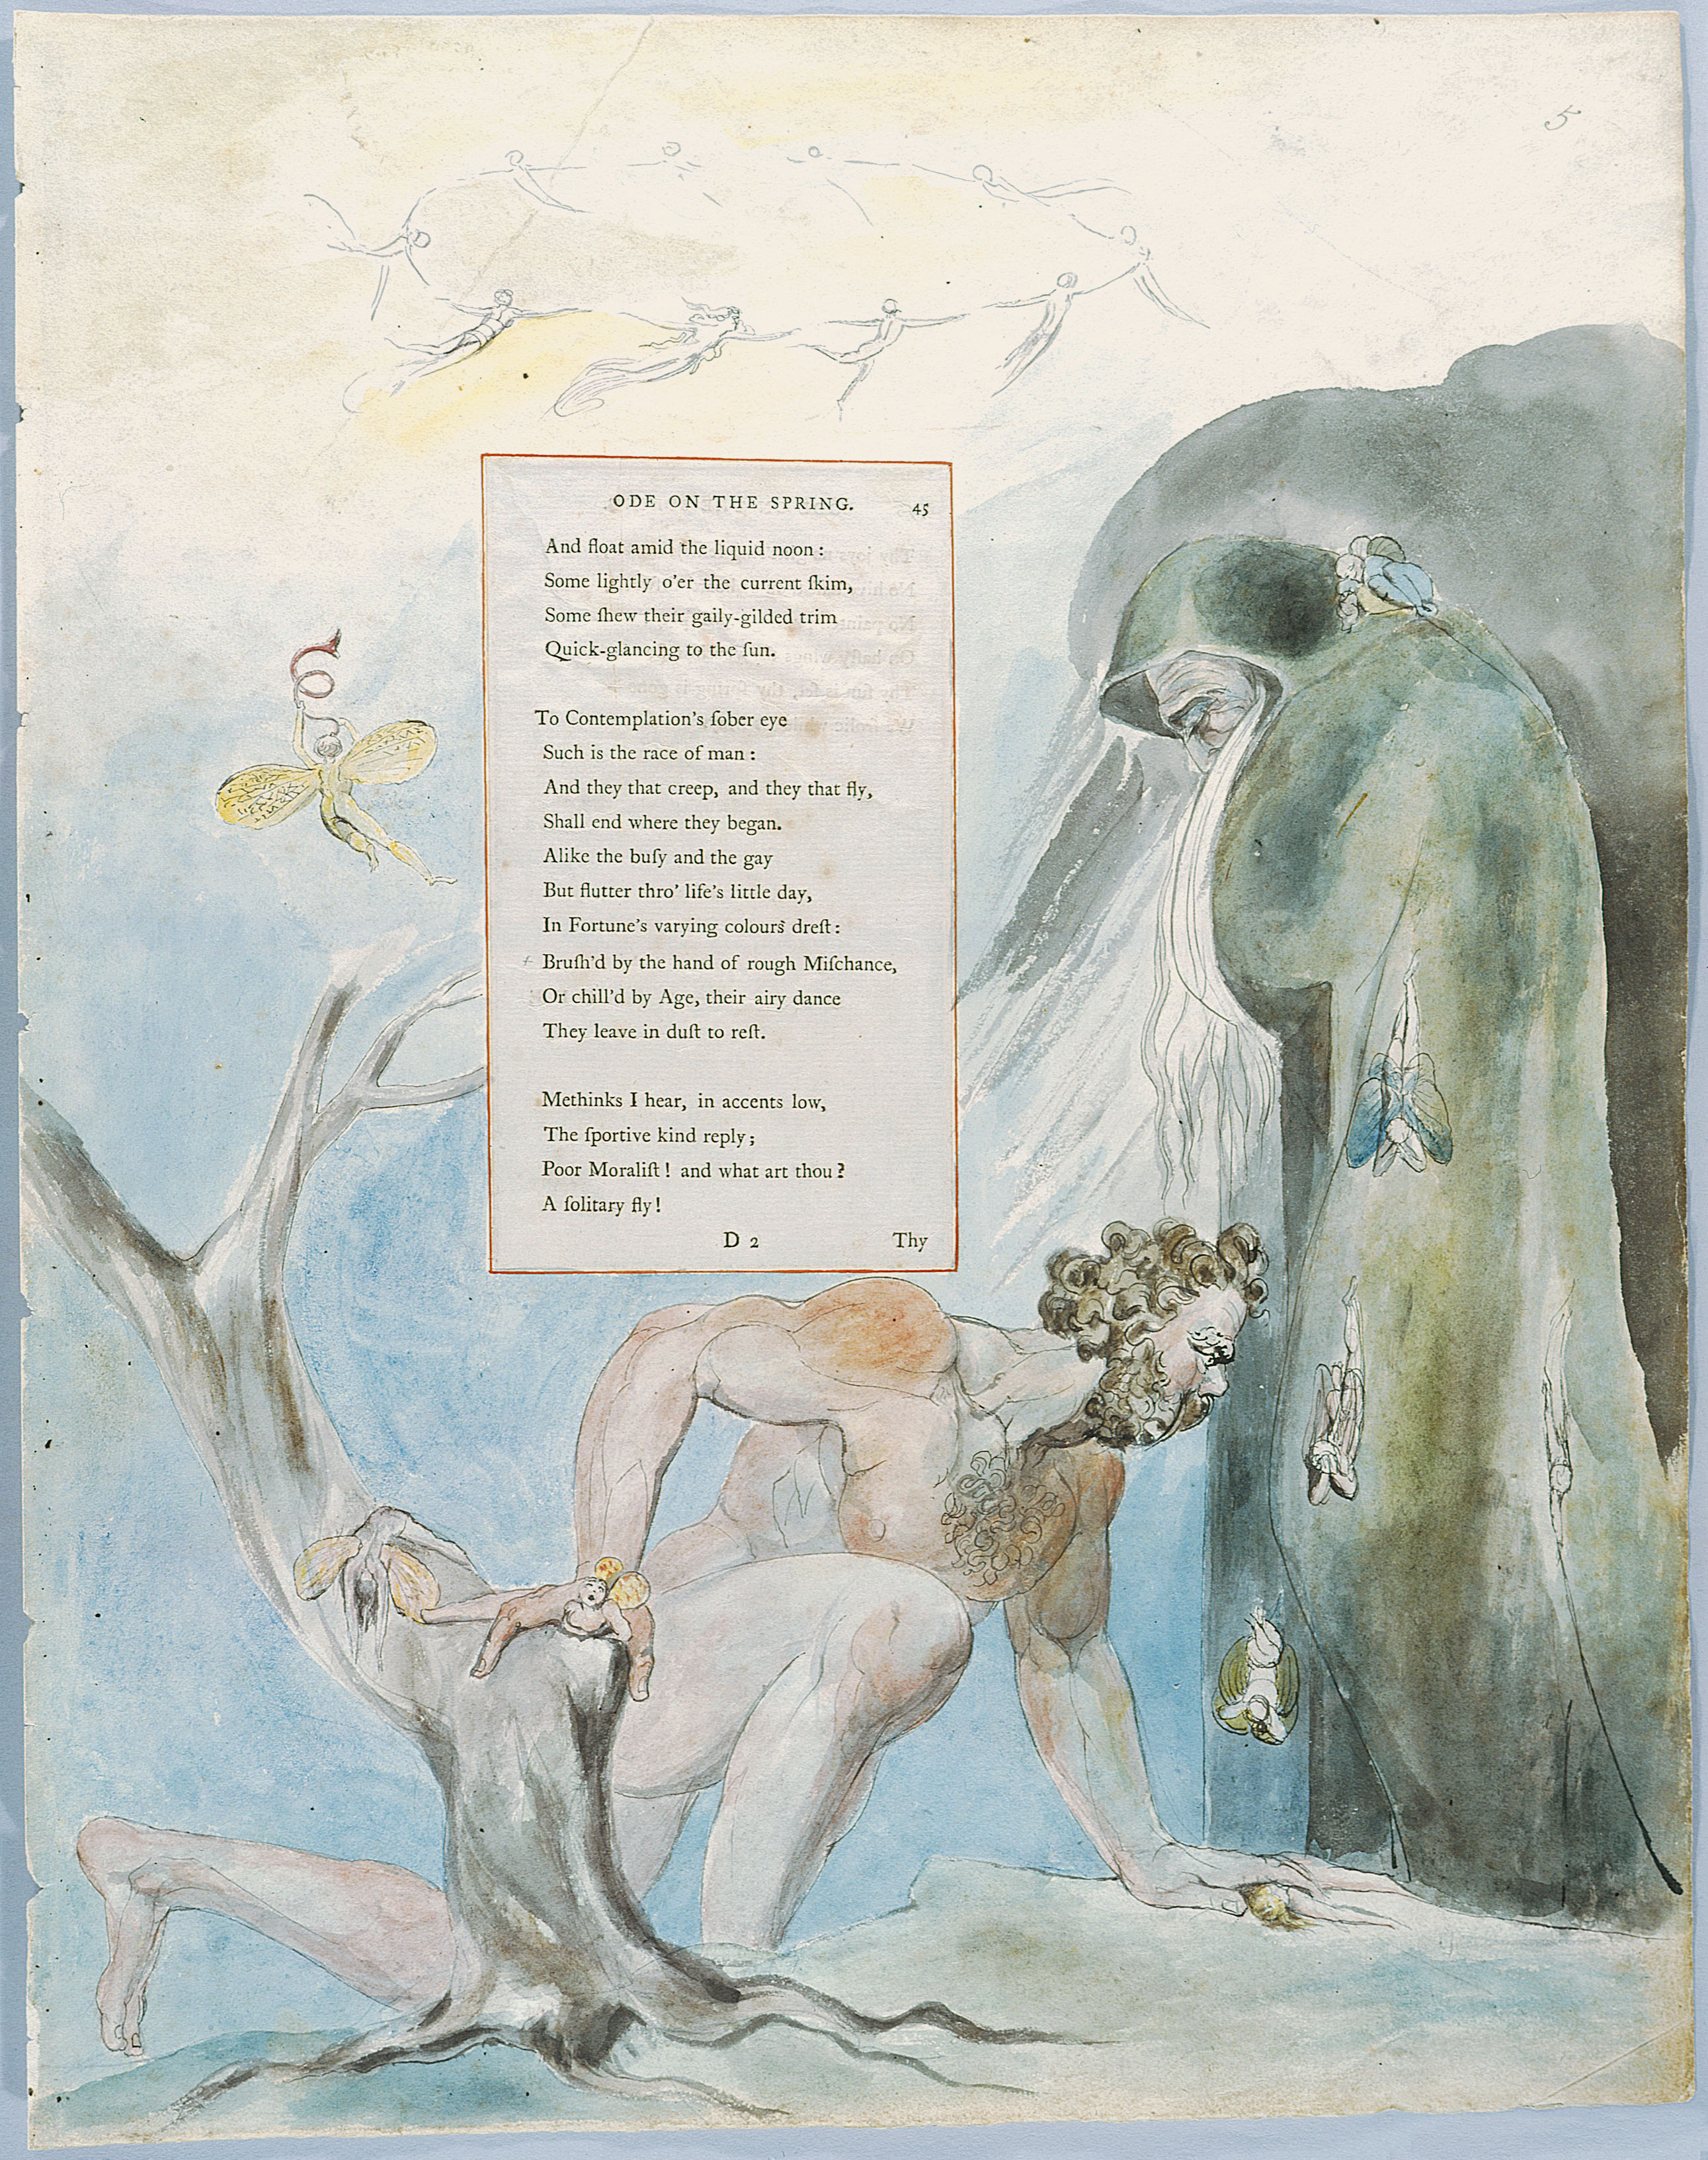 Illustrations to Gray's Poems object 5 Ode on the Spring Page 5.jpg